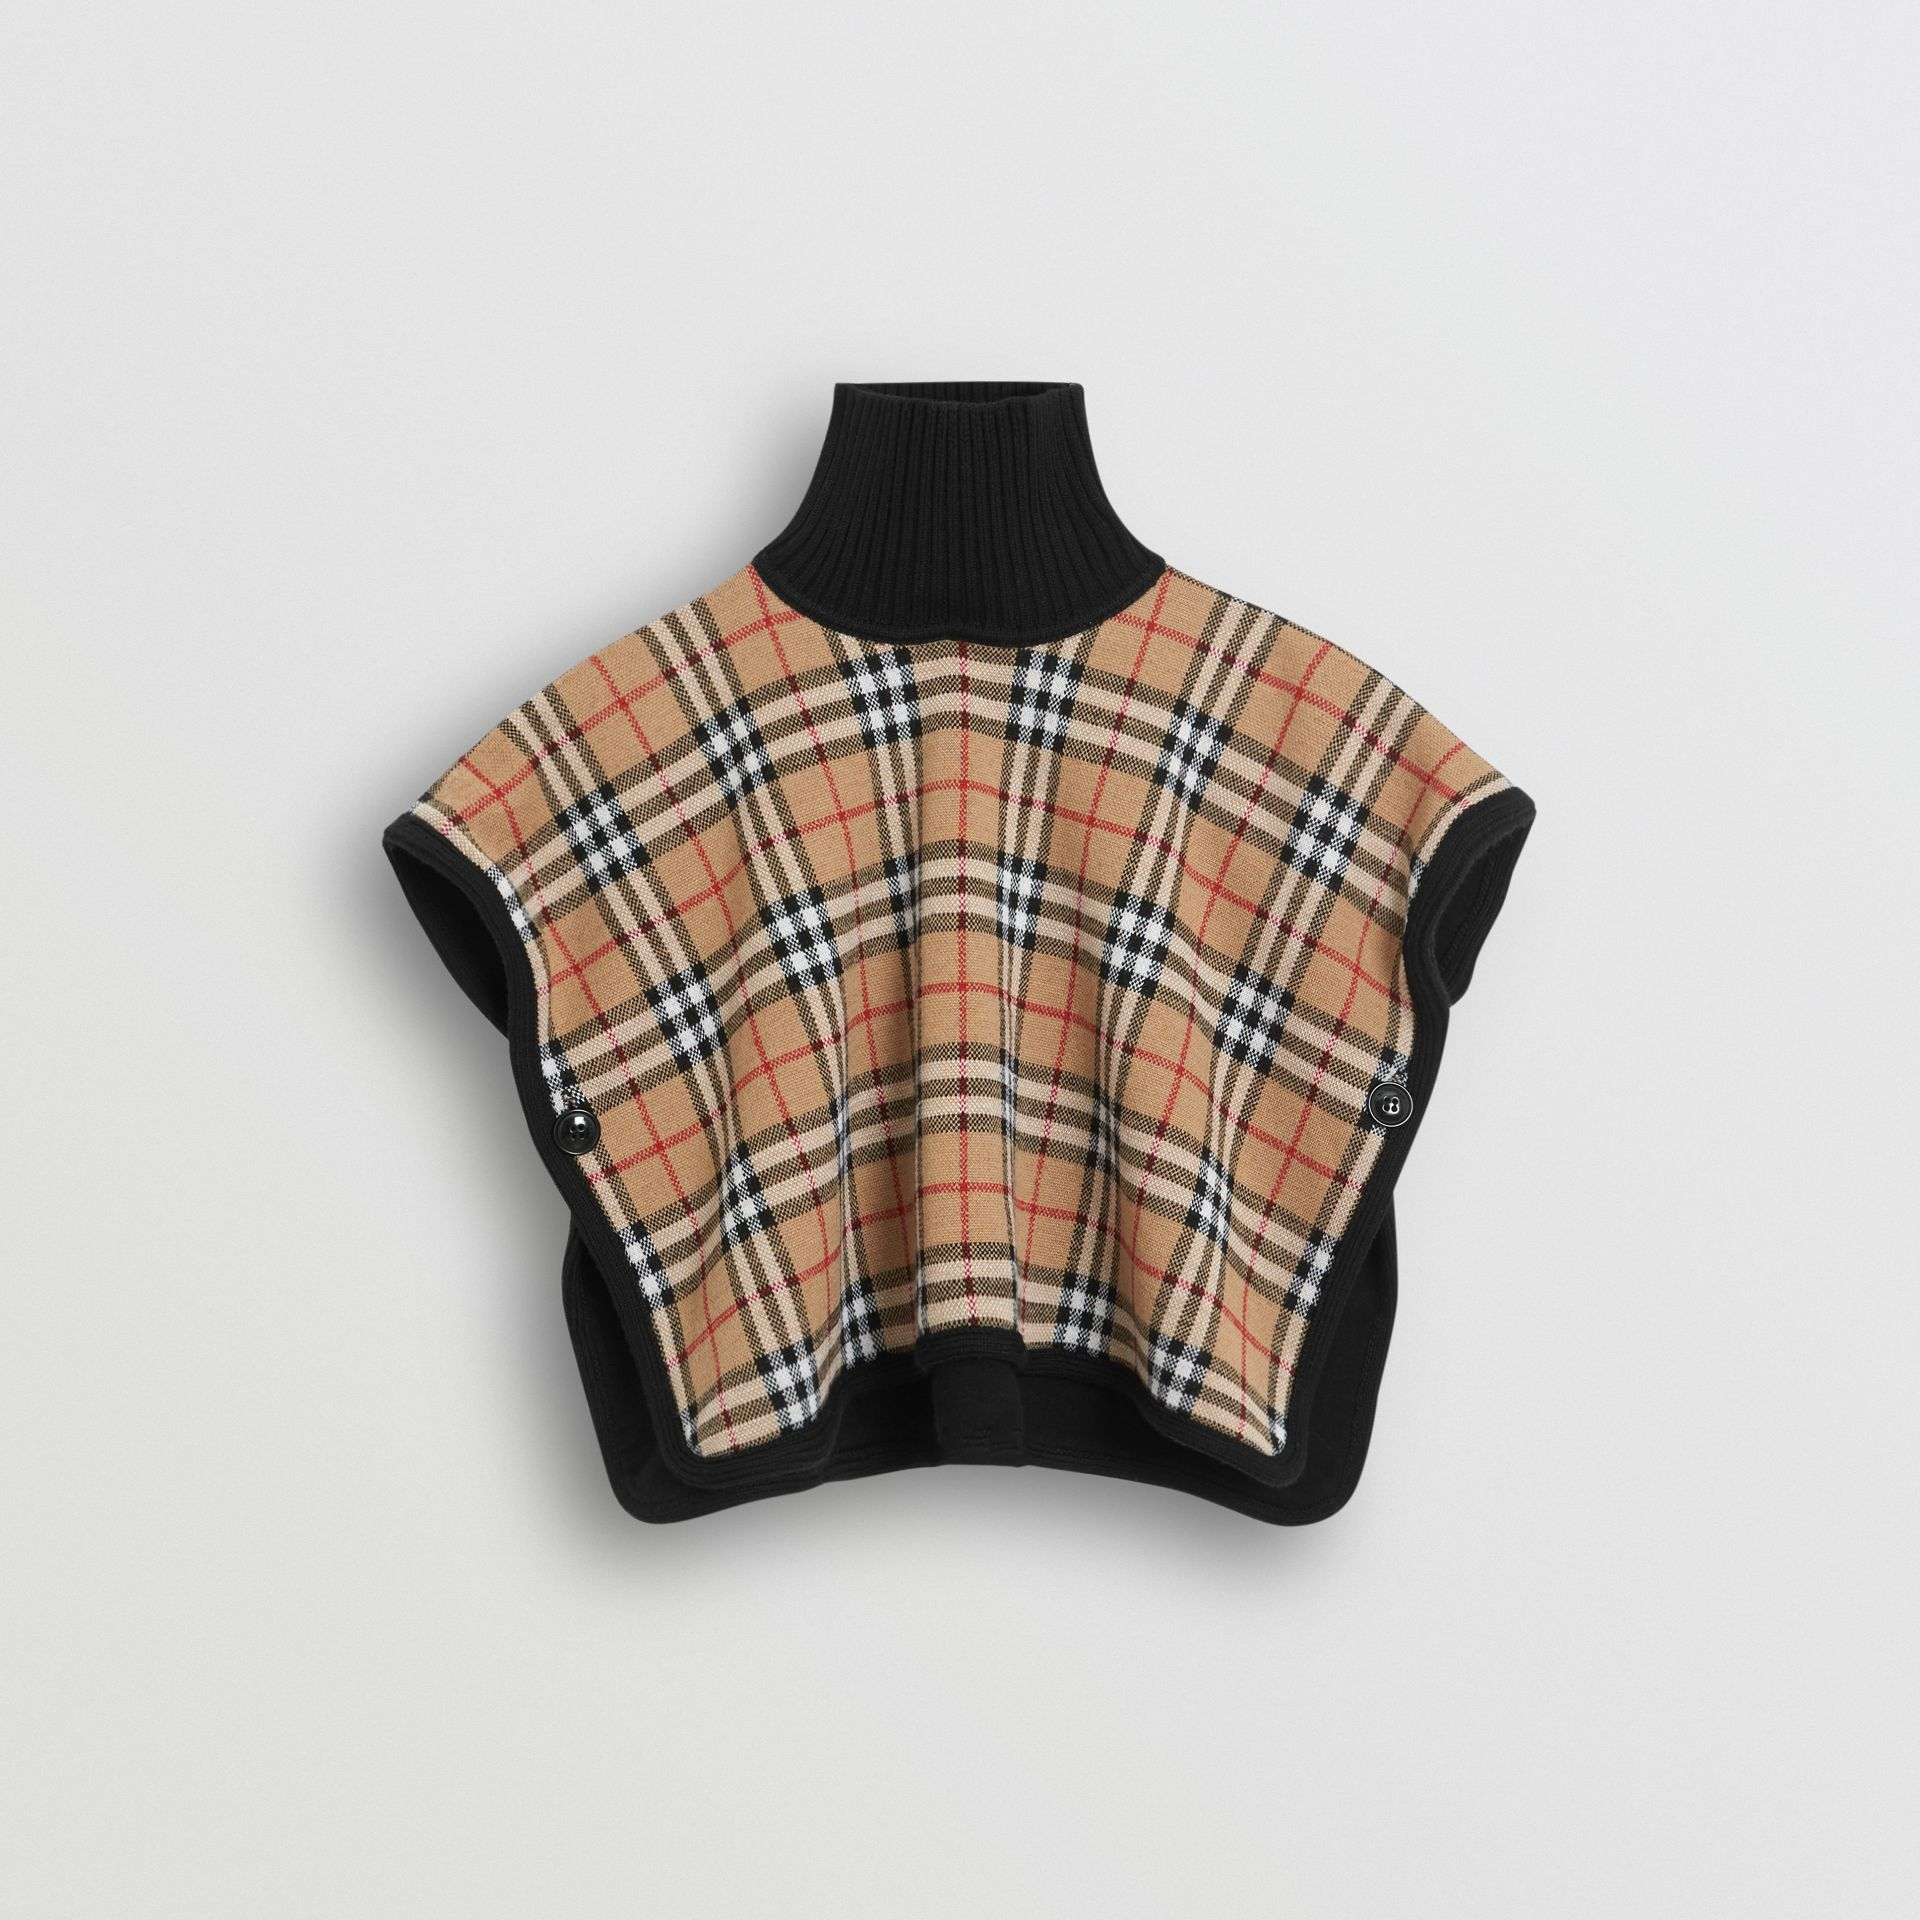 Reversible Vintage Check Merino Wool Jacquard Poncho in Black | Burberry - gallery image 4